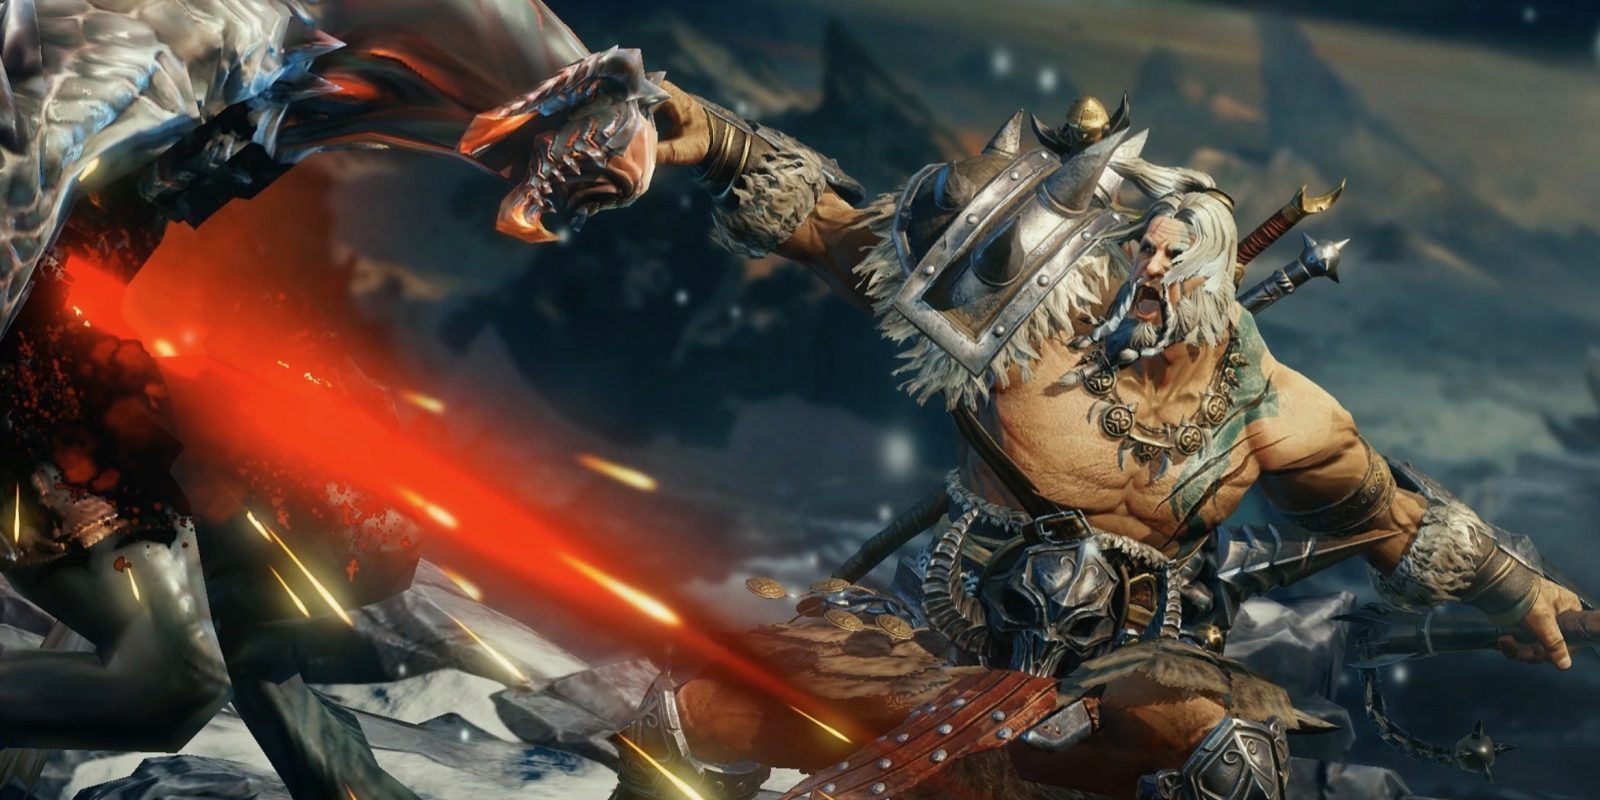 The Responses to Blizzard's Diablo Immortal Announcement Are Not Positive